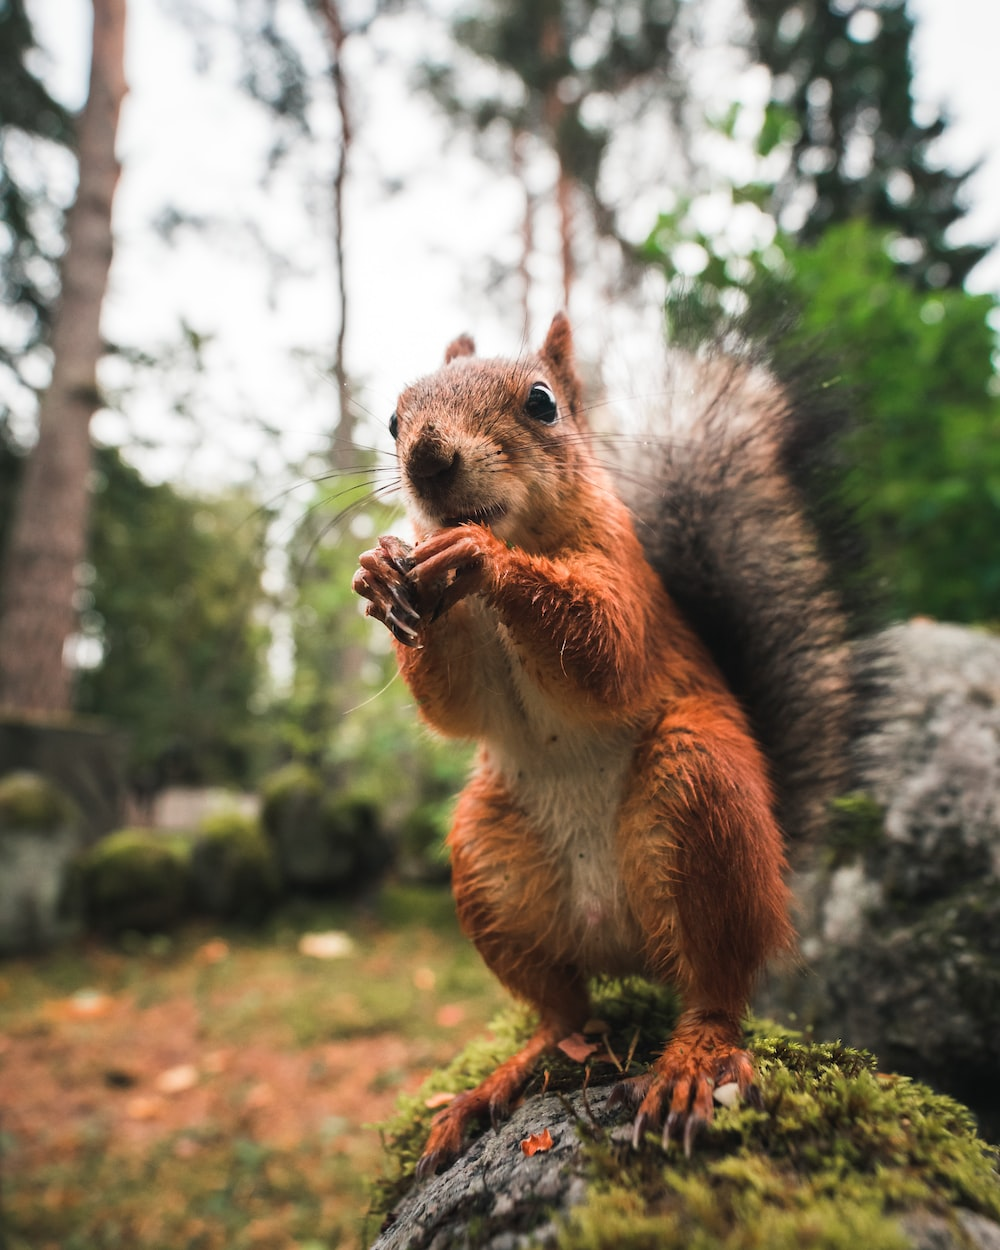 500 squirrel pictures download free images on unsplash